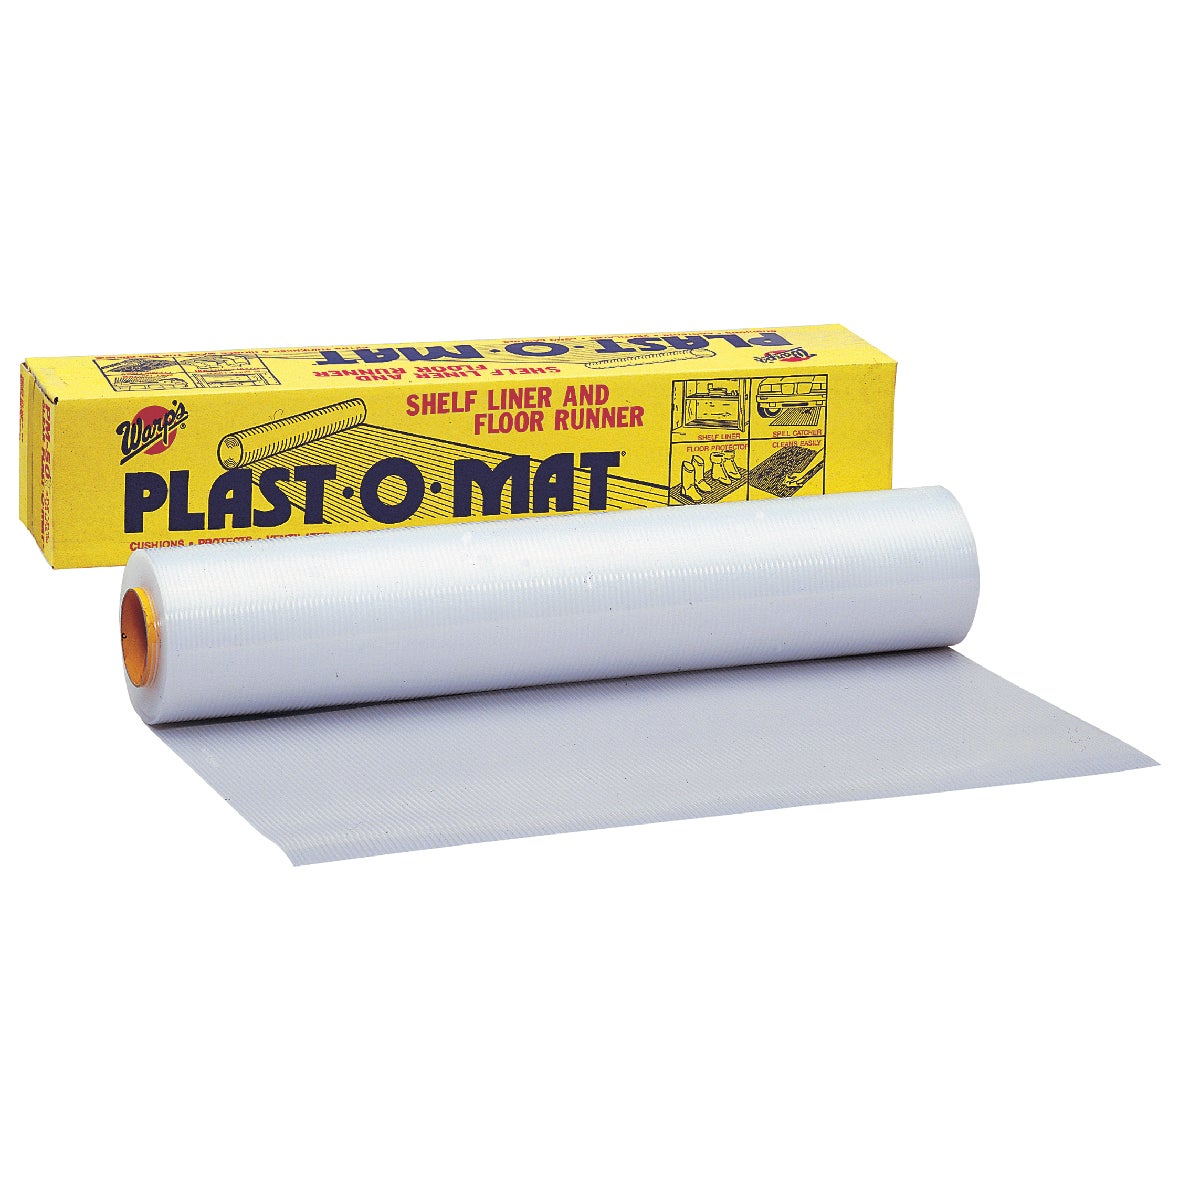 30X50' WHITE PLASTIC MAT - PM50W by Warp Bros